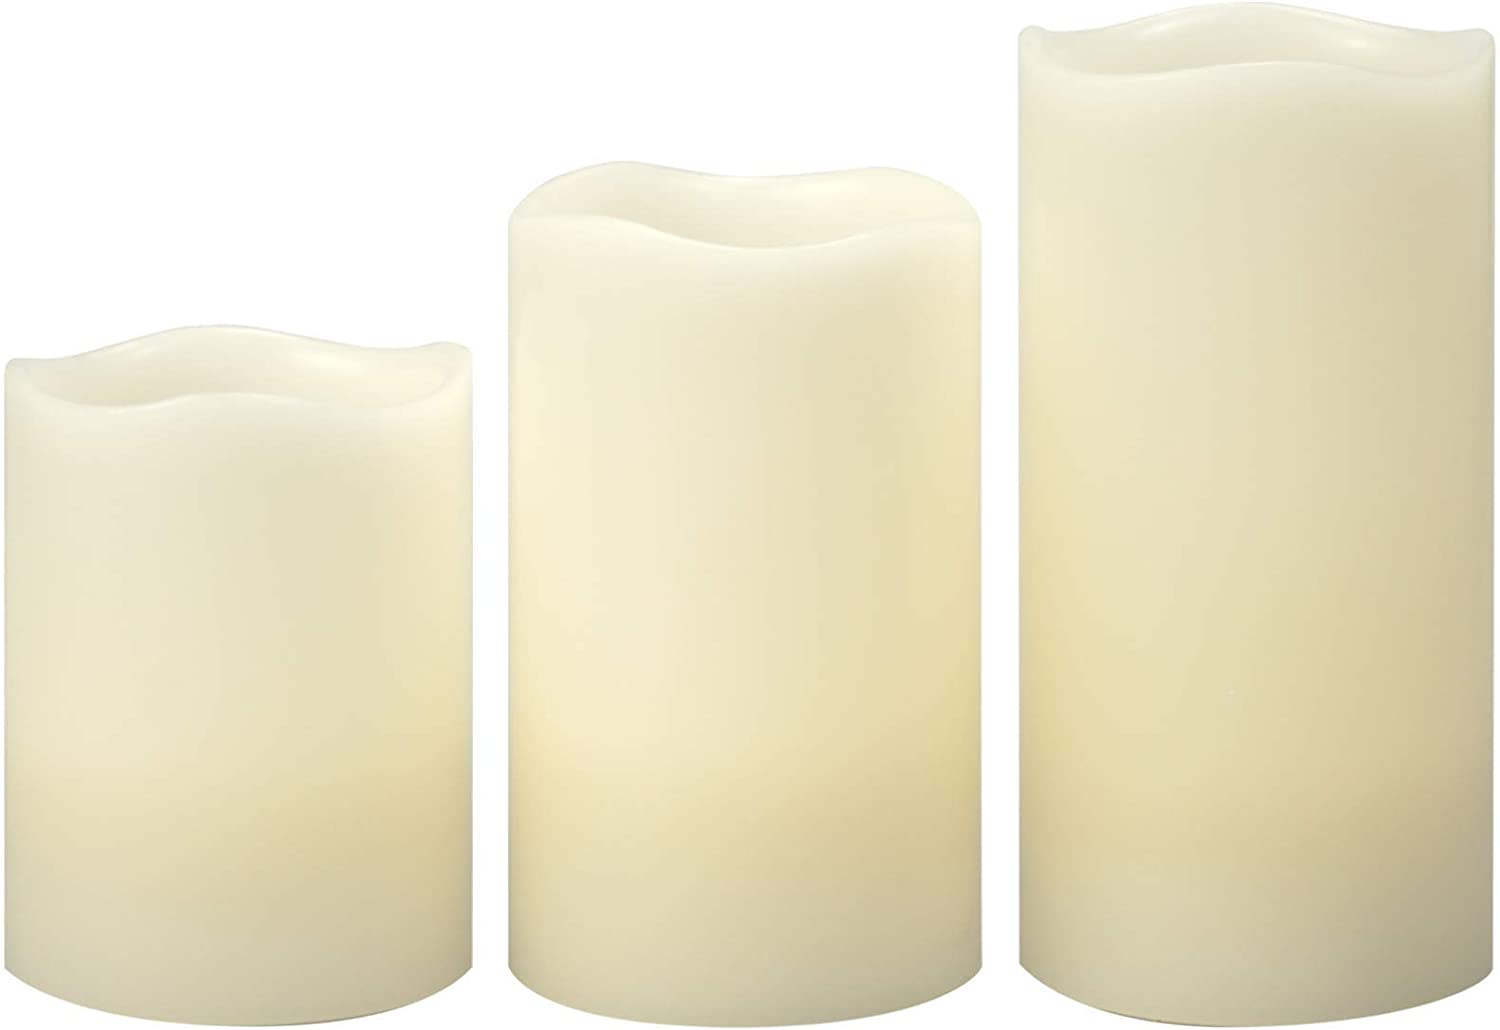 Battery Operated Flameless Candles with Timer Real Wax Realistic Flicker Flickering Bright Electric Electronic LED Pillars Automatic Lights for Home Décor Wedding Party Christmas Decorations Set of 3